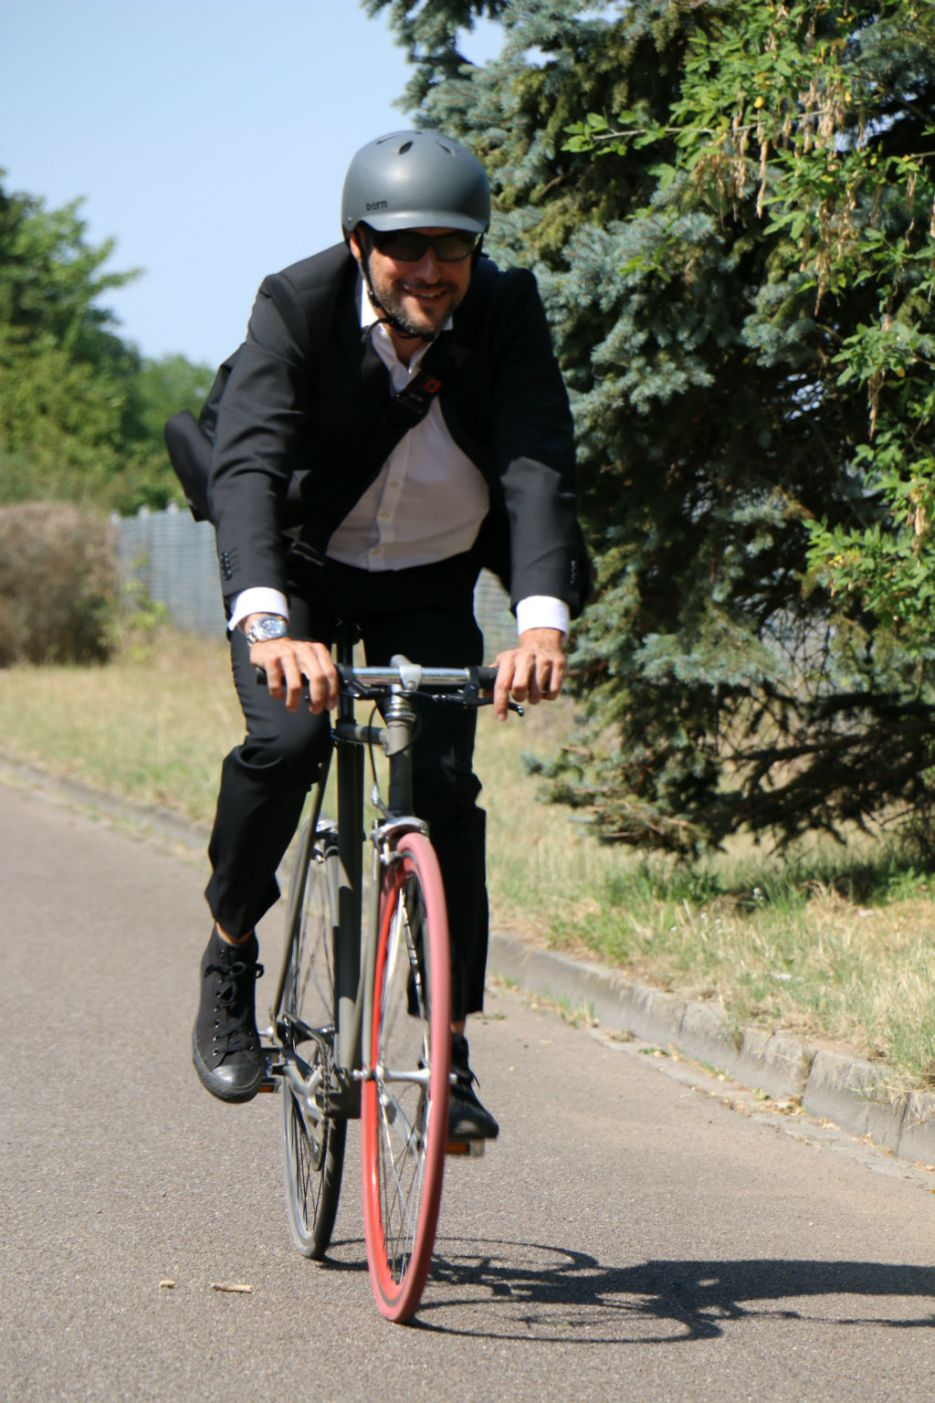 Mr-Ride-Business-Outfit09